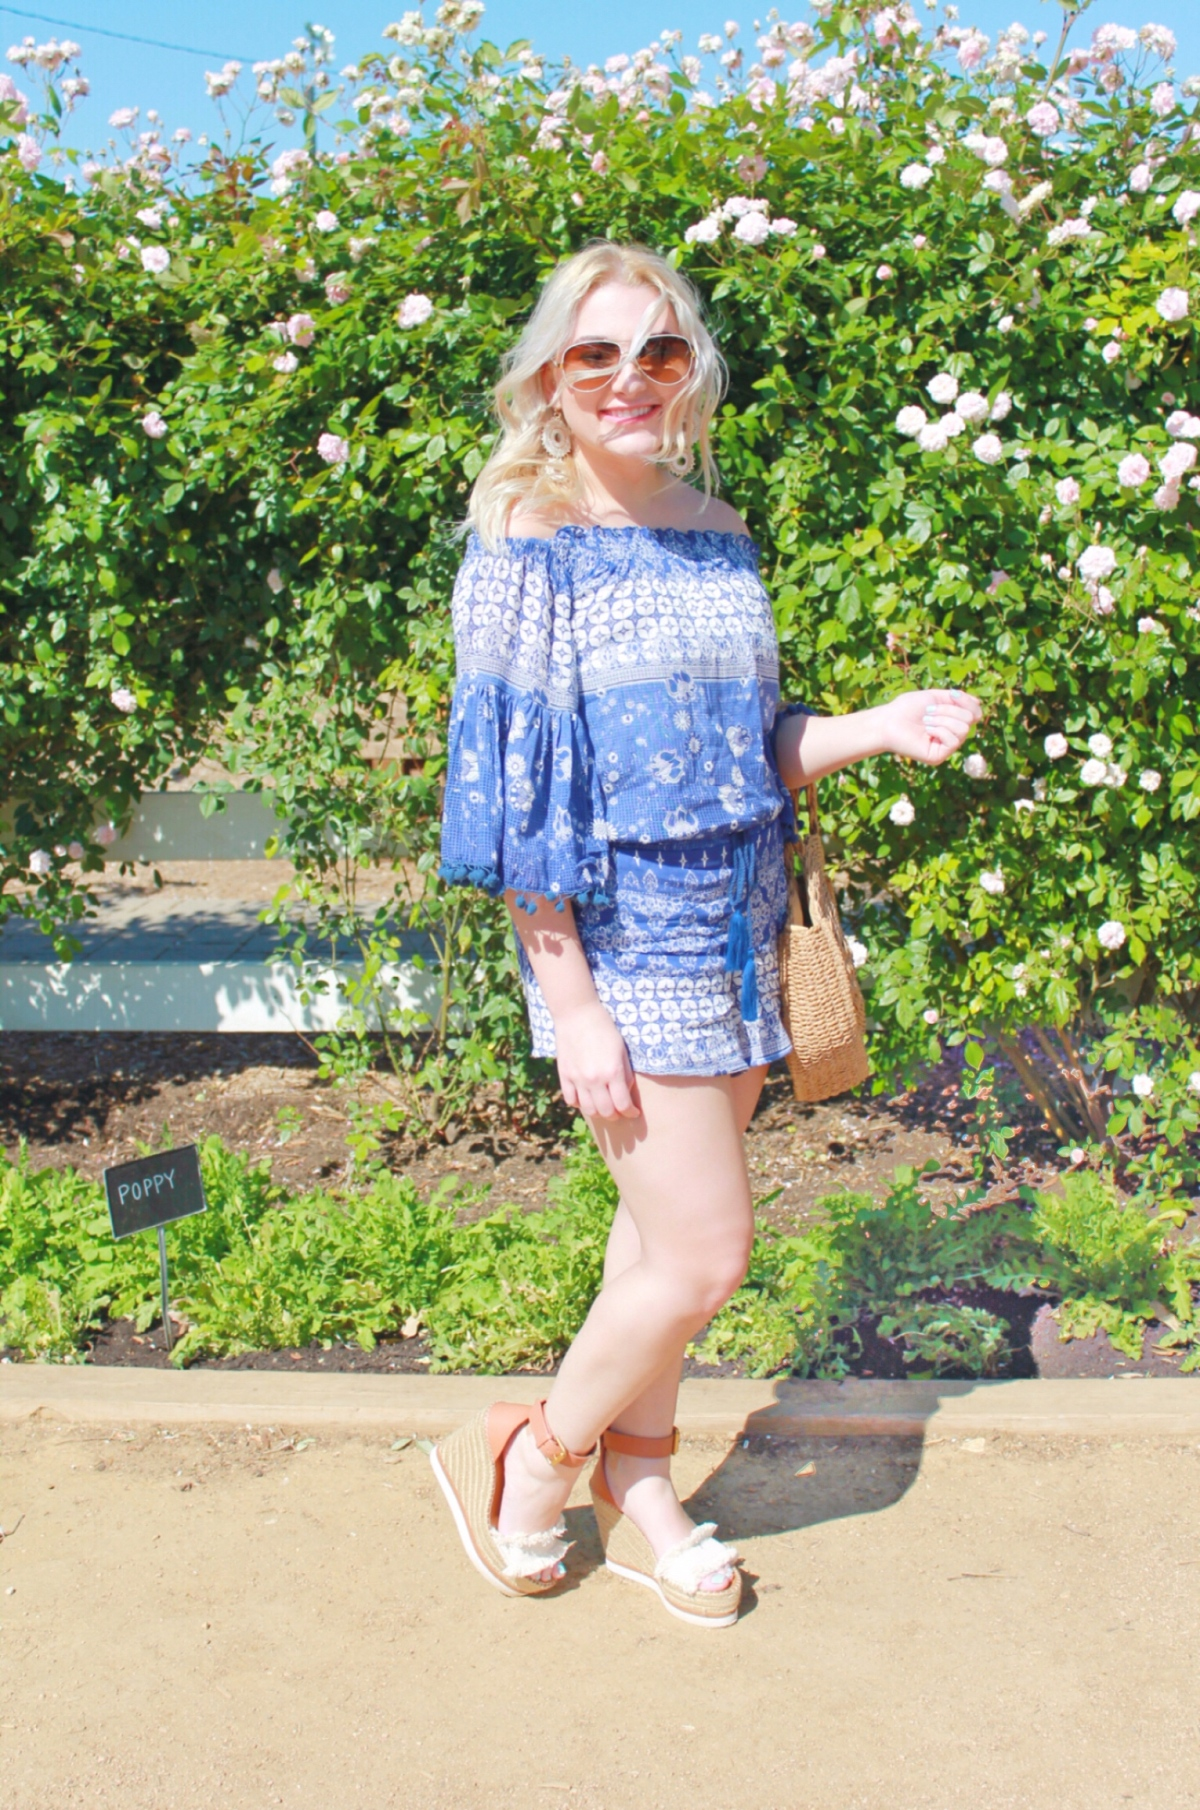 Rompers, Tassels, & Pom Poms OH MY!